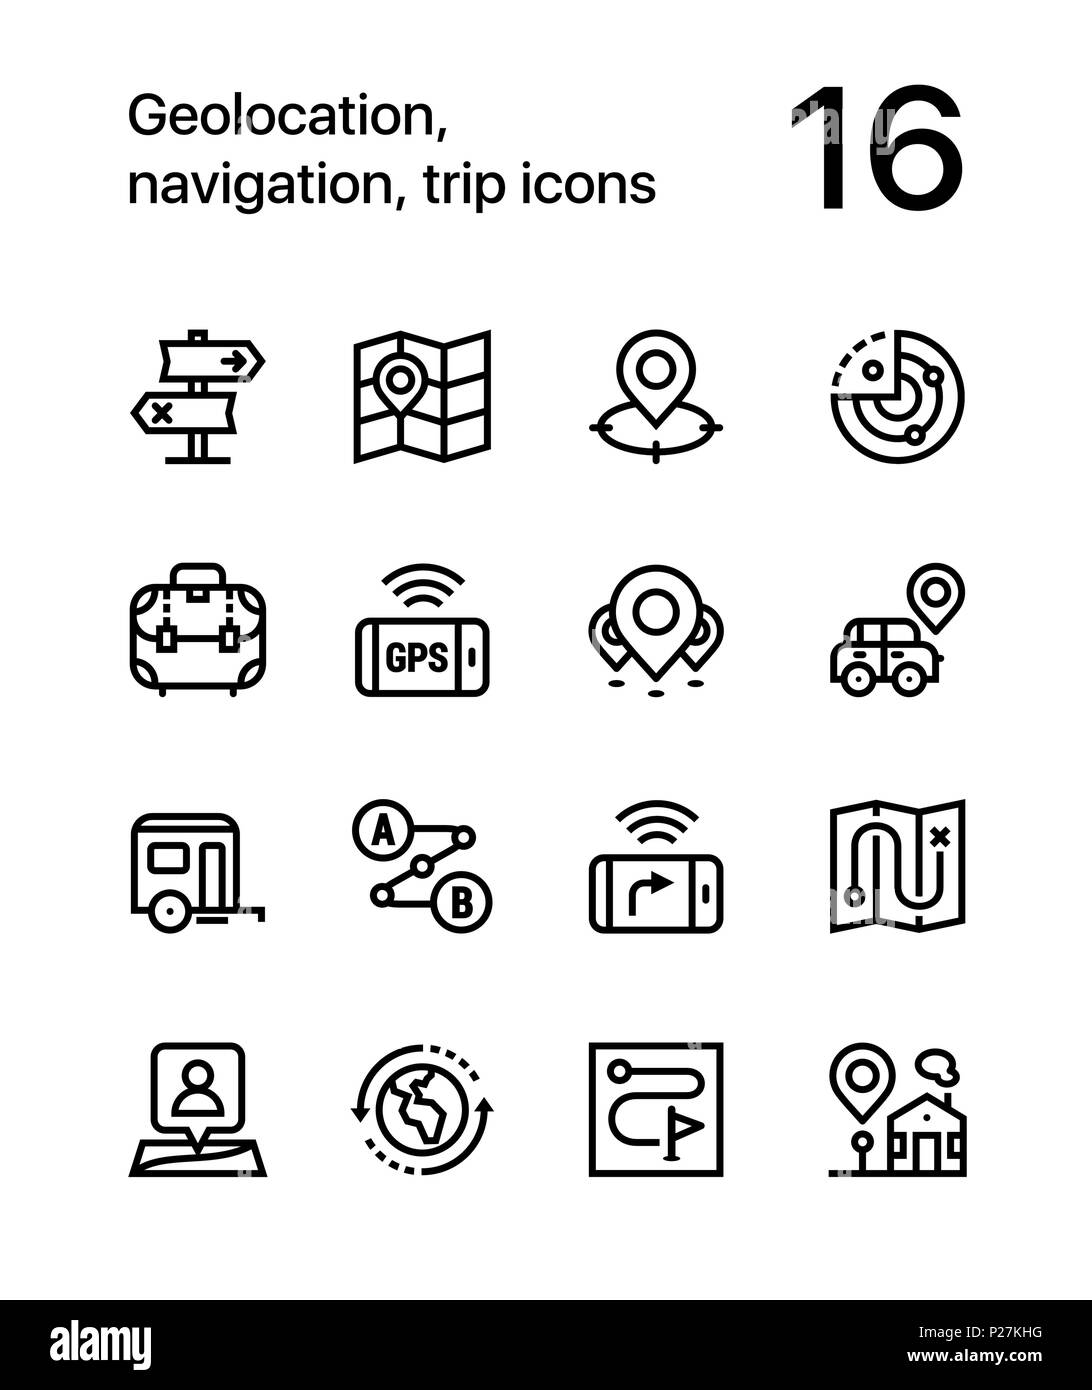 Geolocation, navigation, trip icons for web and mobile design pack 2 - Stock Vector